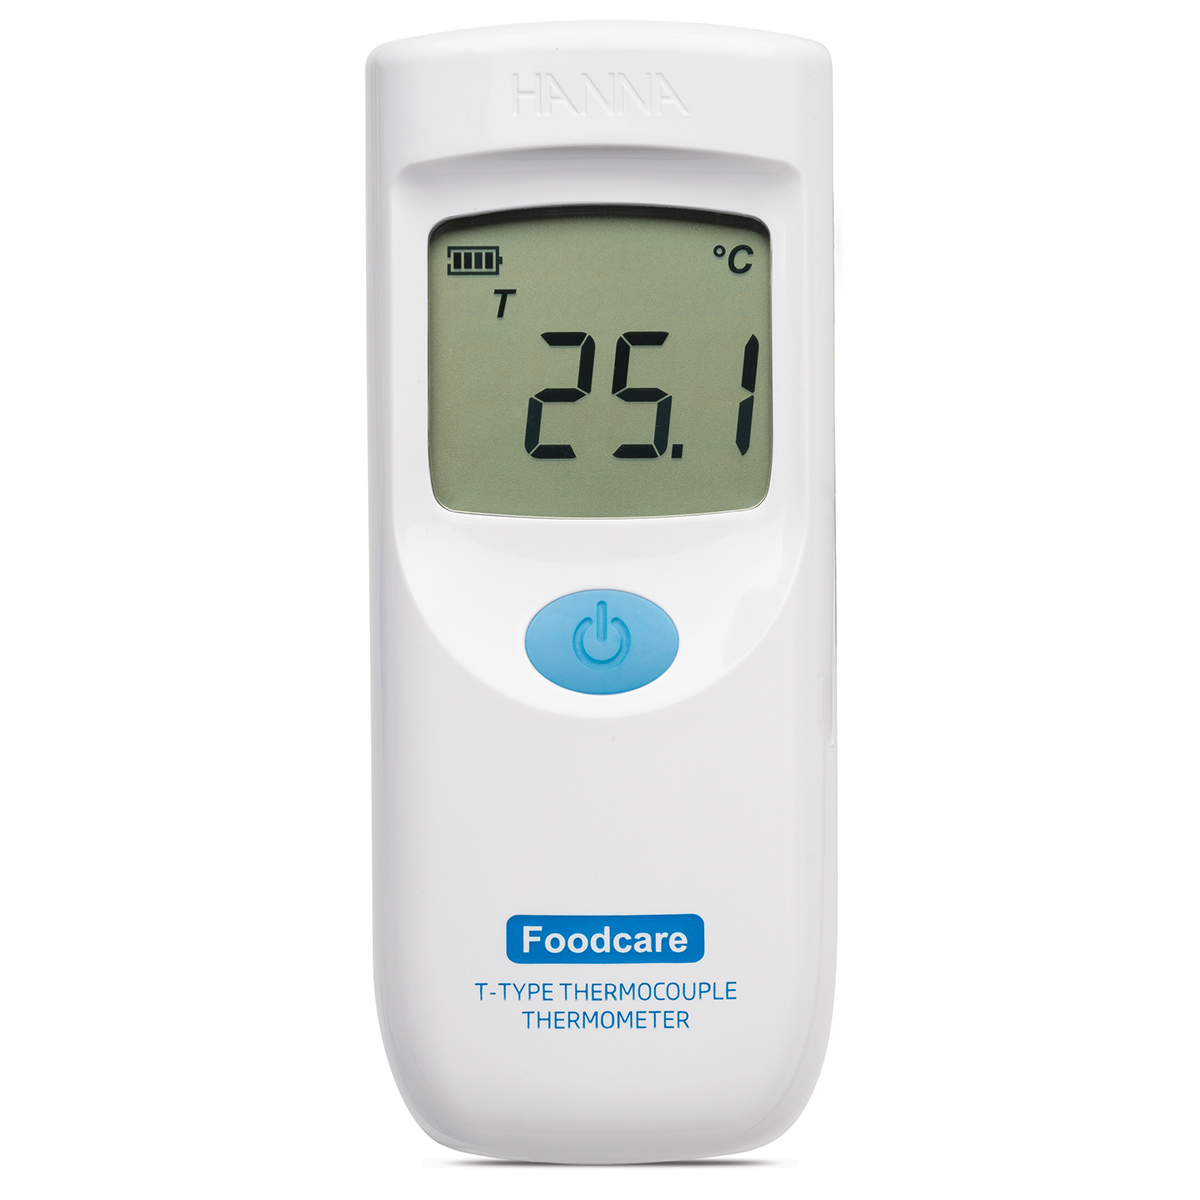 Foodcare T-Type Thermocouple Thermometer with Detachable Probe - HI935004